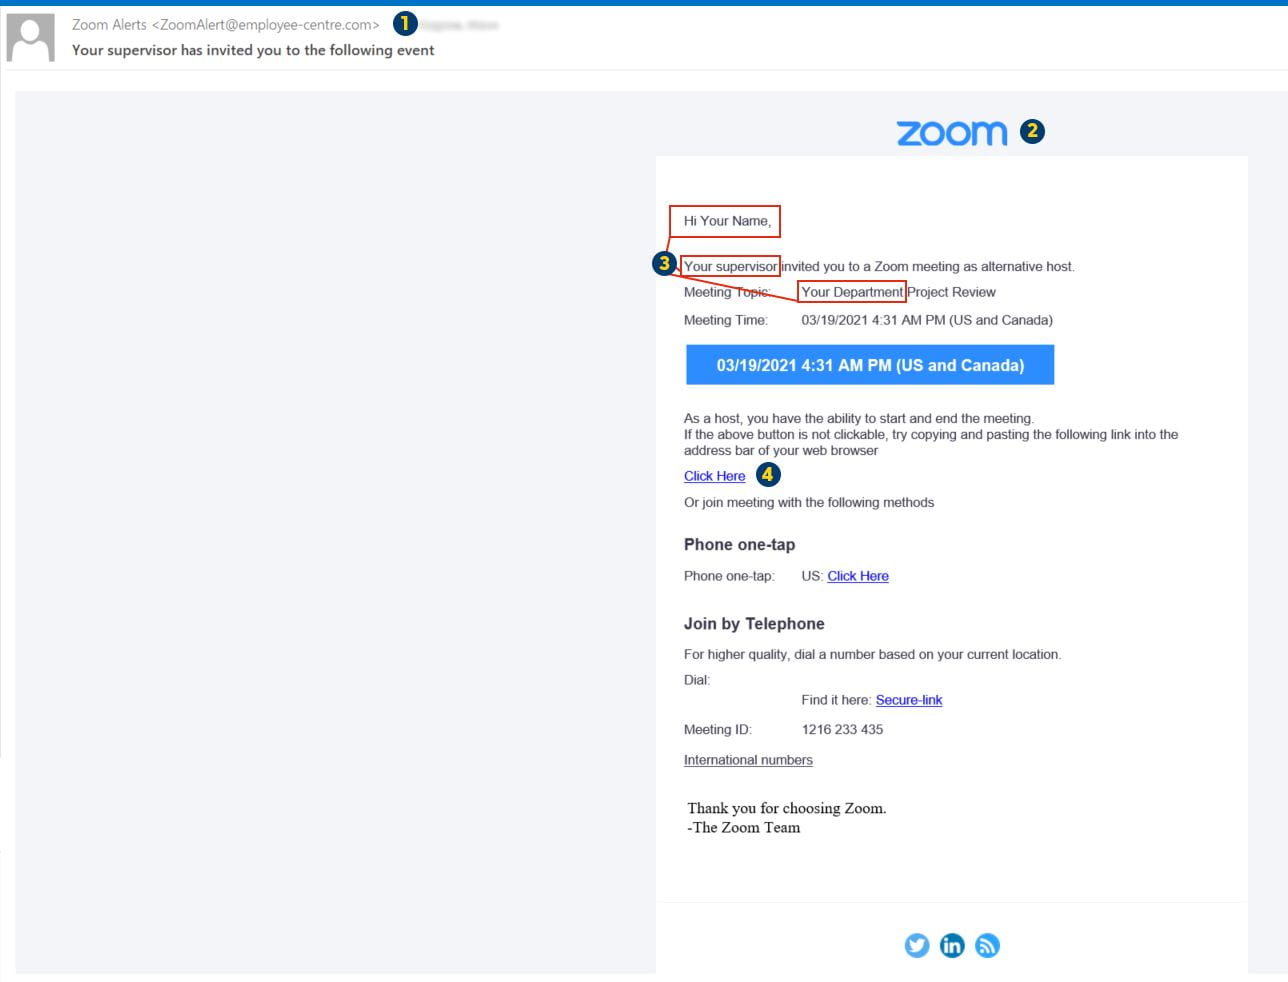 March 2021 annotated email